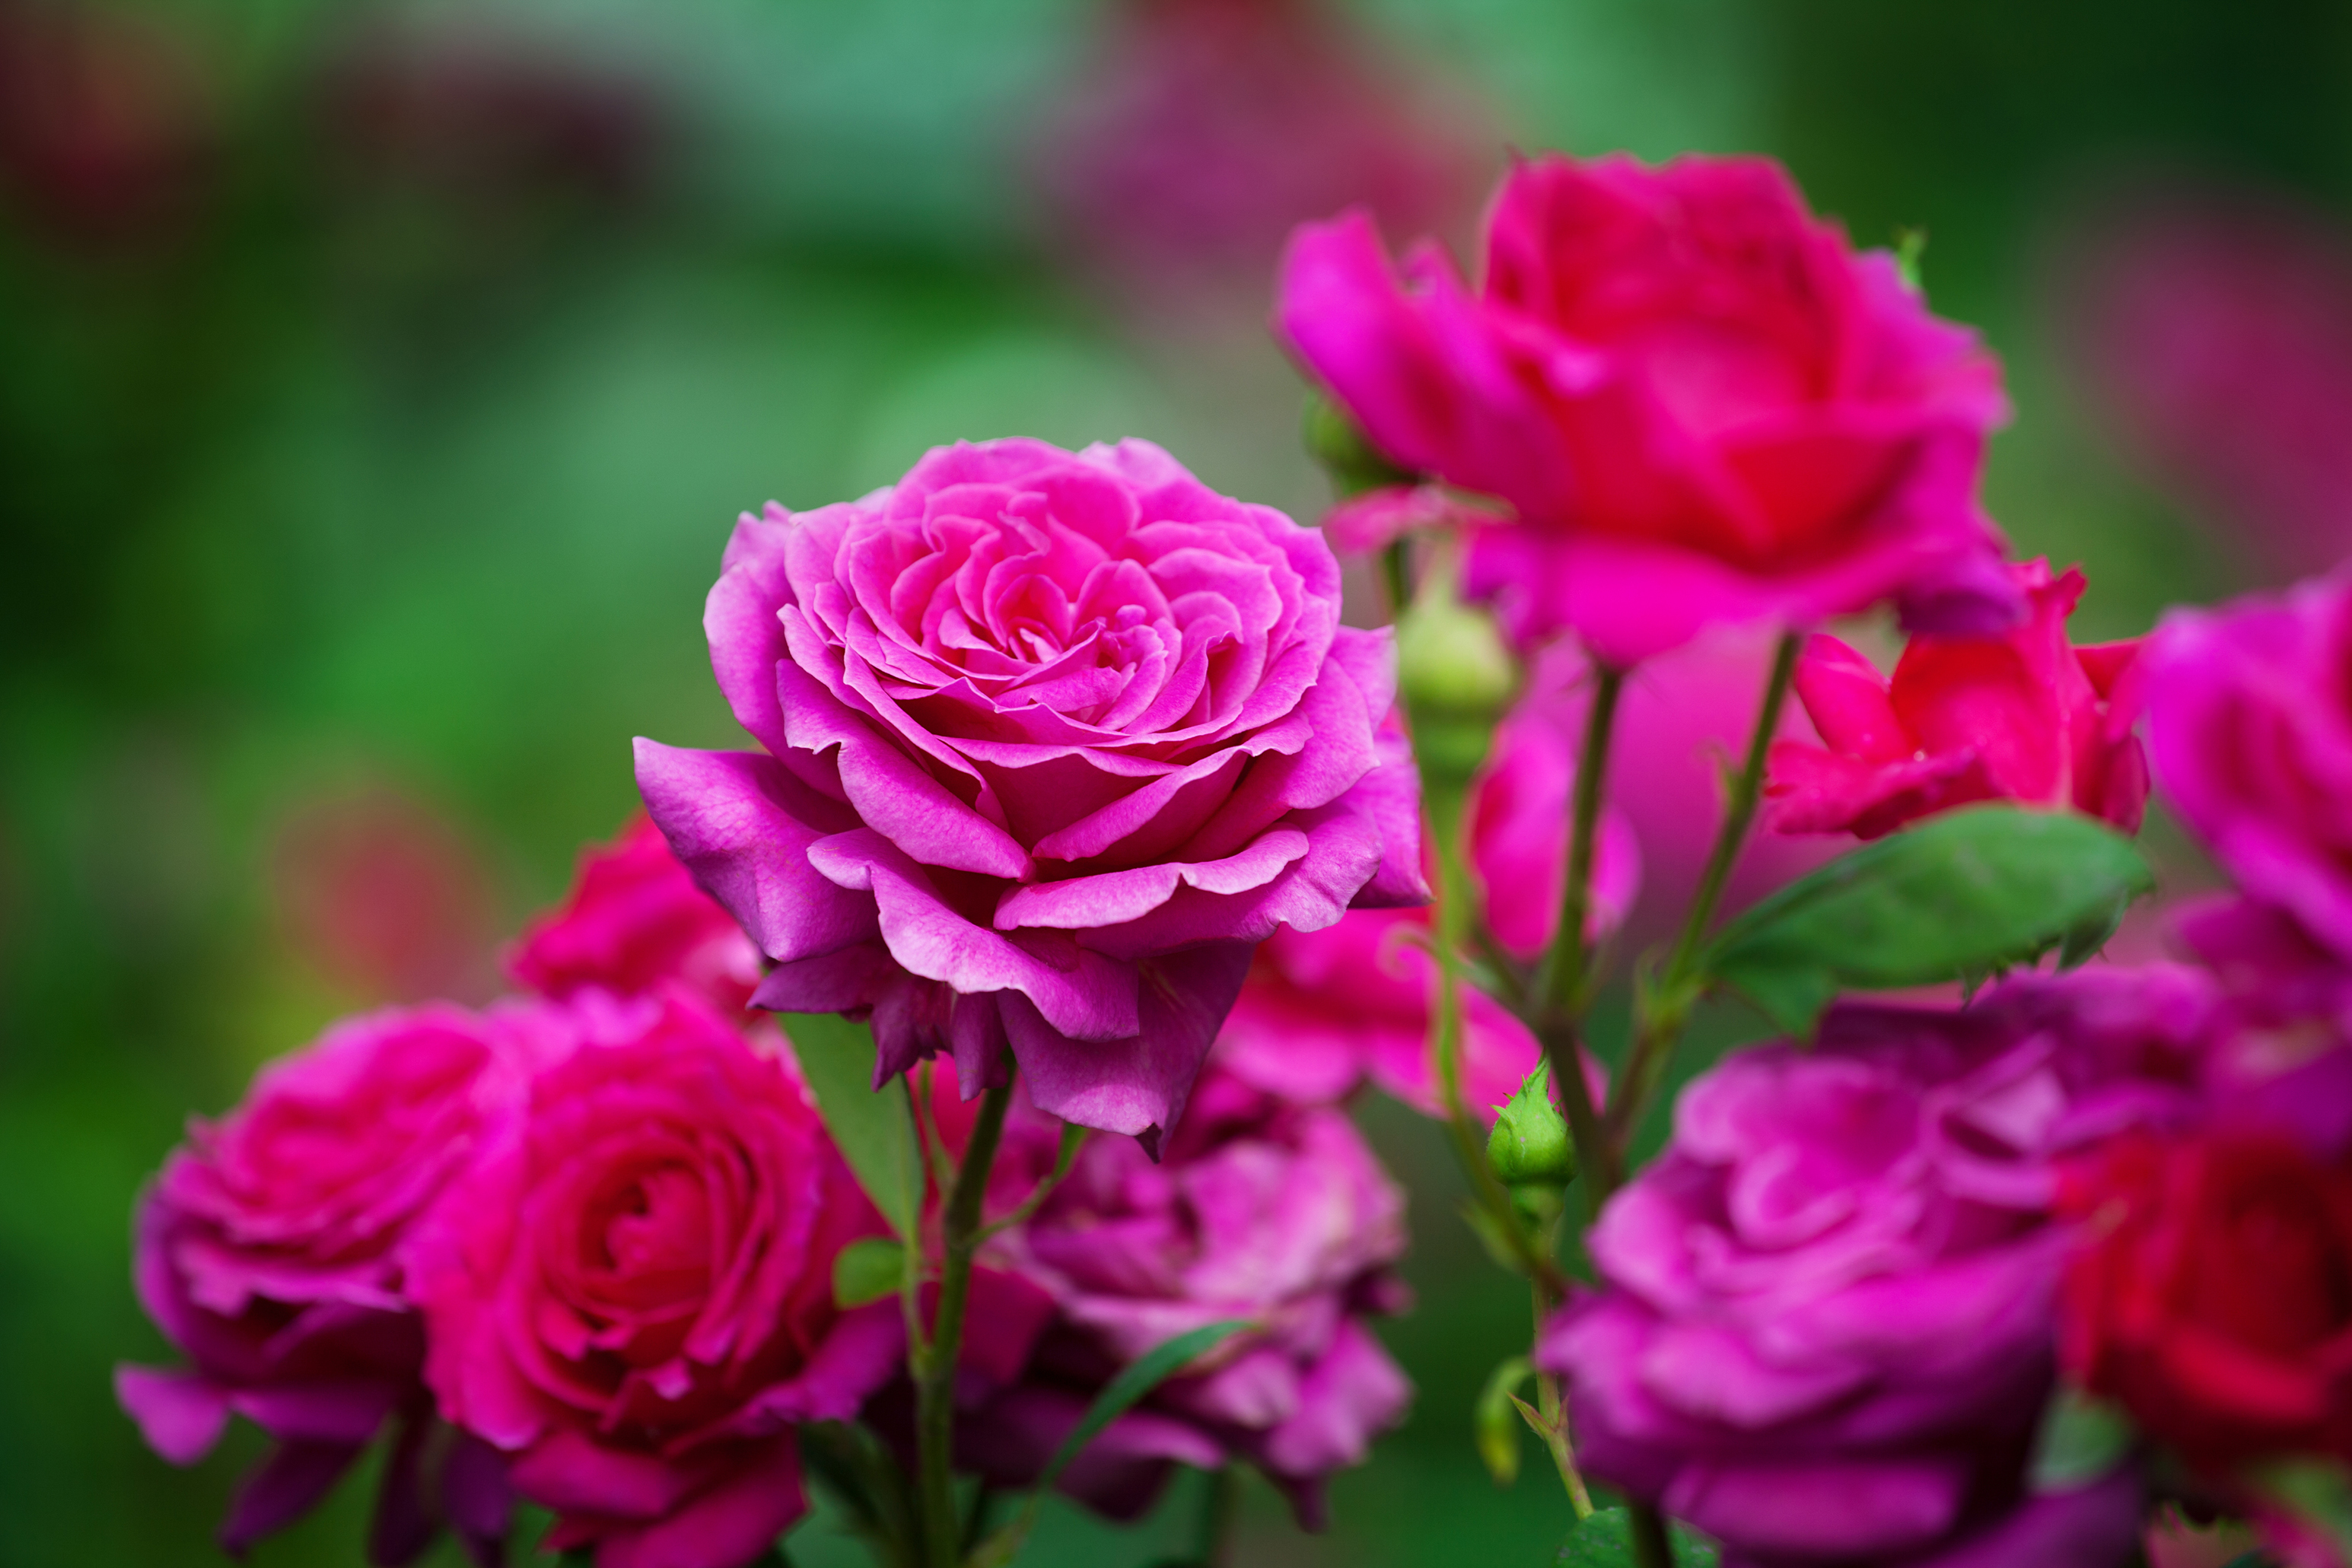 Roses may need a little looking after, but they bring romance into the garden (iStock/PA)